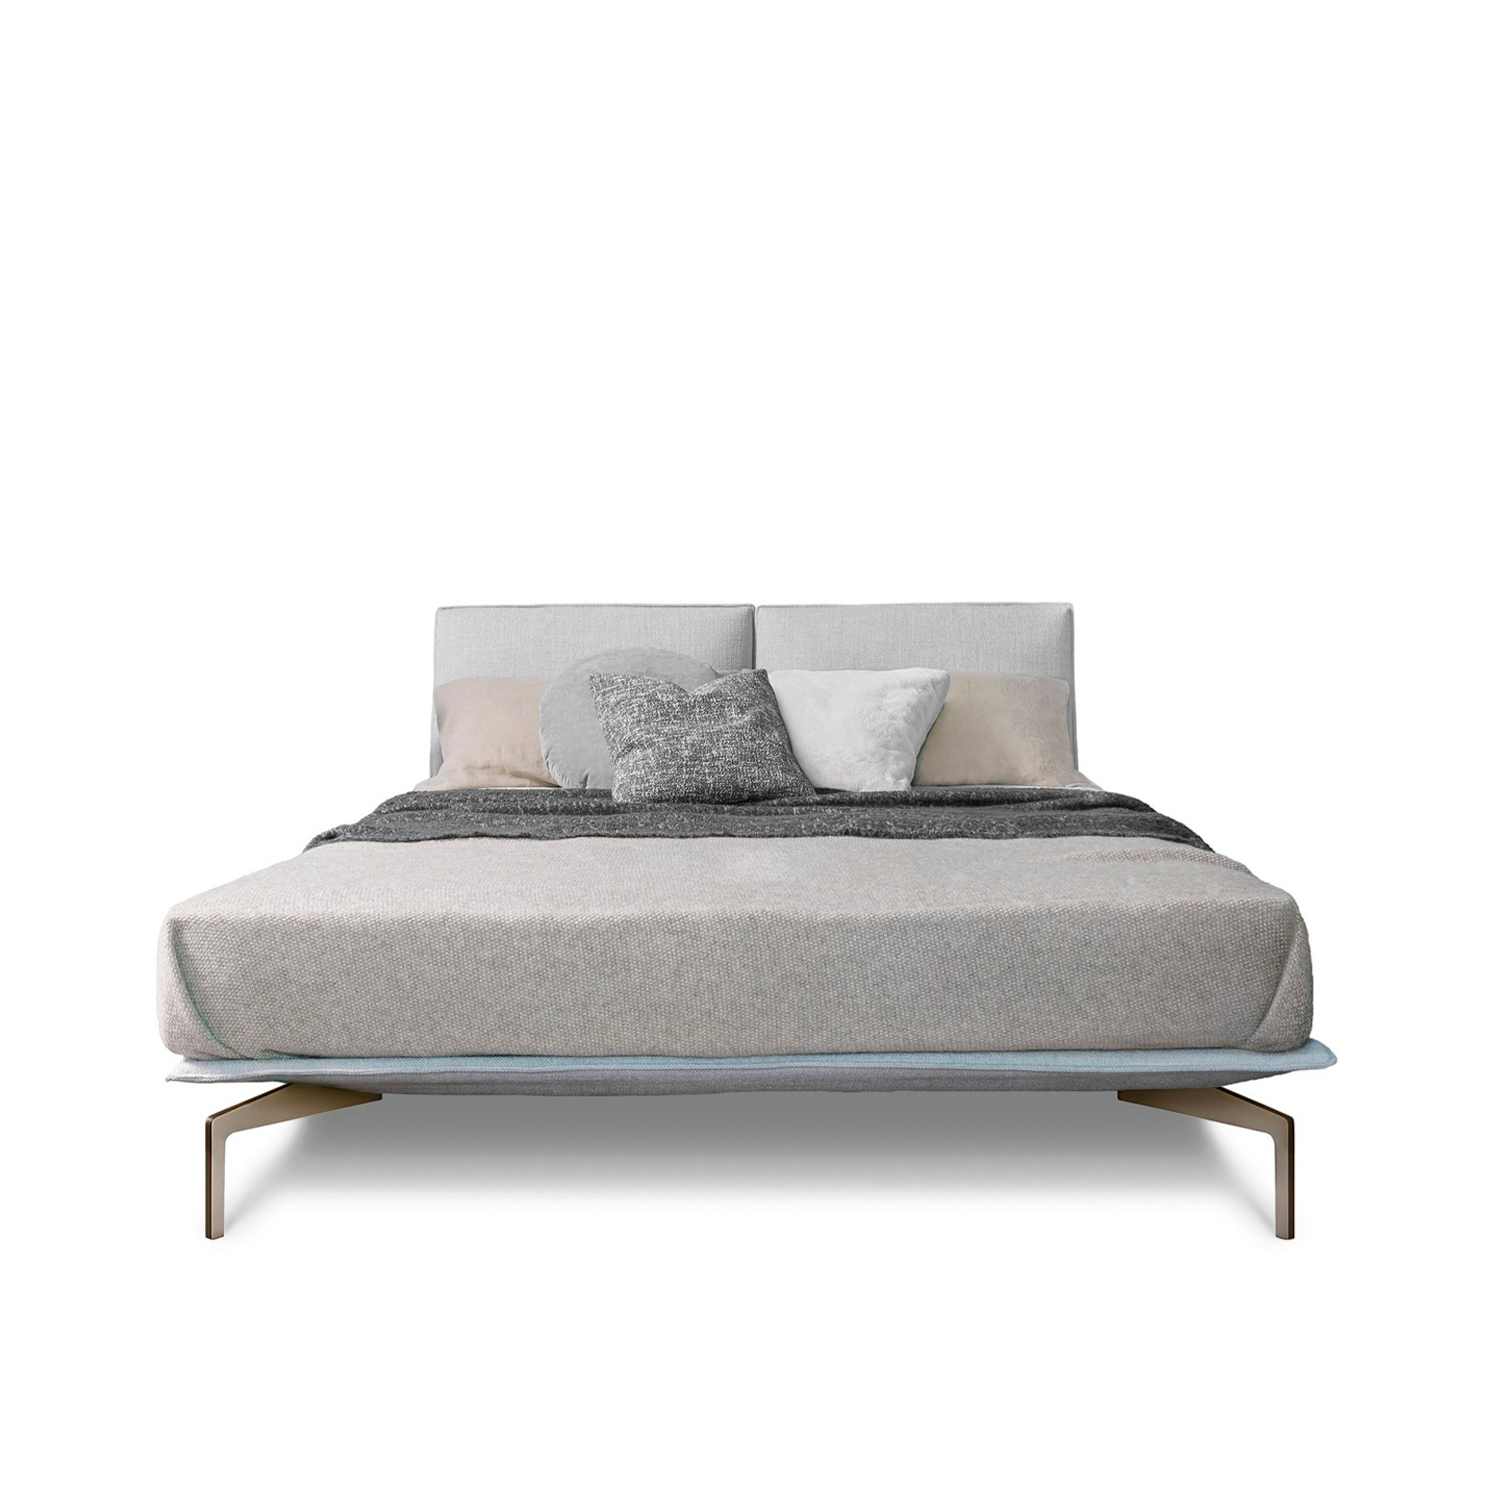 Avant-Aprés Bed  - The Avant-Après bed has a sober allure and elegant presence. The design is grounded yet lightweight and transforms into a range of interesting configurations thanks to the detachable headboard. The headboard pieces allow for flexibility in the design and can be positioned along the entire circumference of the base. The bed-frame available for upholstery in fabric or leather, rests neatly on a metal base finished with glazed chrome or painted metal feet.  Additional removable cover is available, please enquire for prices.  Materials Structure in painted metal, the structure includes an orthopedic bed base in semi-rigid multilayer wood with millings for the mattress ventilation and it is covered with velfodera coupled with pressed 300gr/sqm. Headboard panels are in multilayer wood padded with polyurethane foam and covered with velfodera coupled with polyurethane foam. Their anchorage with base is guaranteed through painted metal plate equipped with brackets. | Matter of Stuff